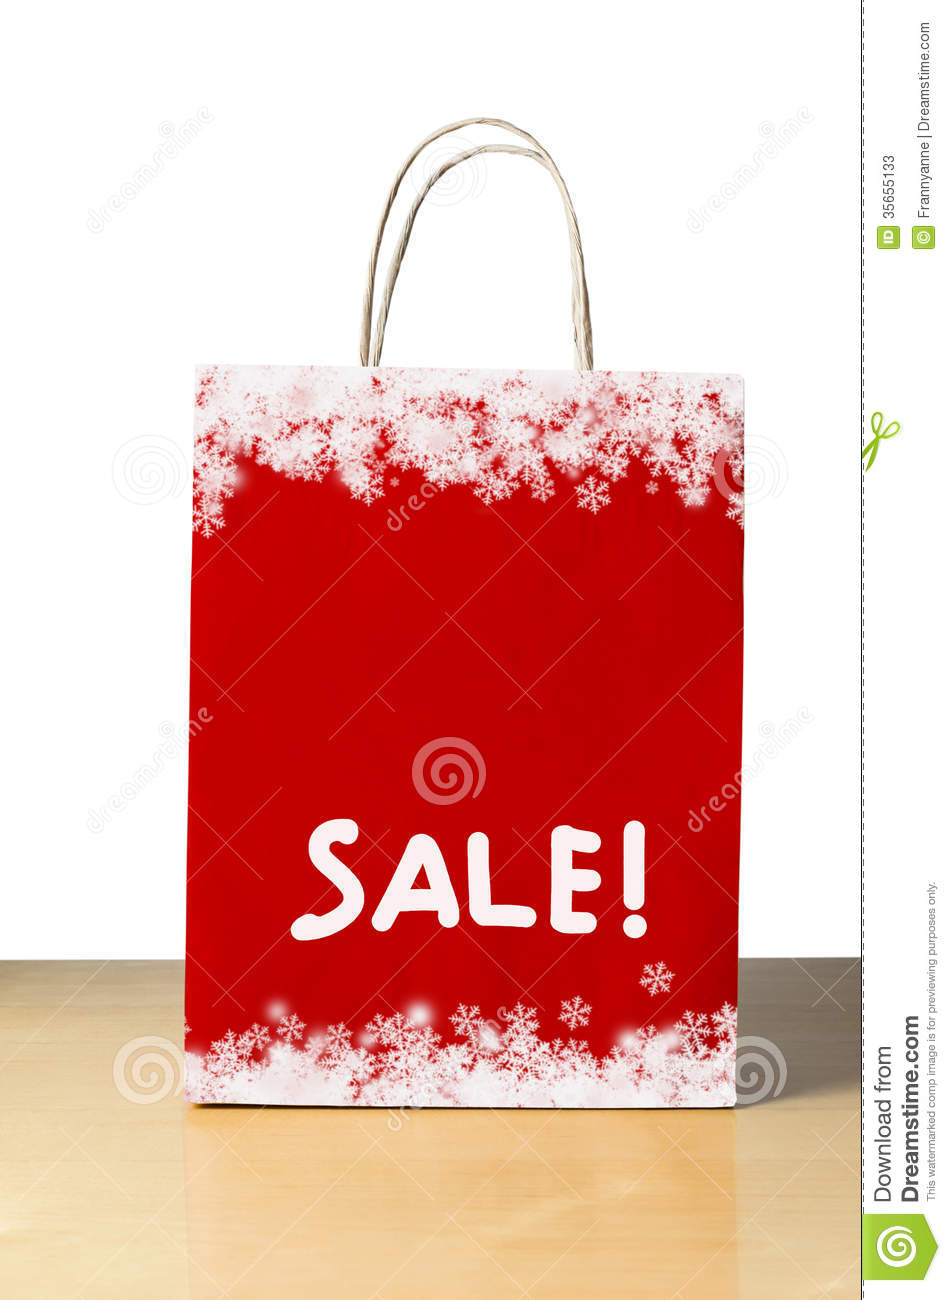 Red Christmas Sale Bag Stock Photos - Image: 35655133